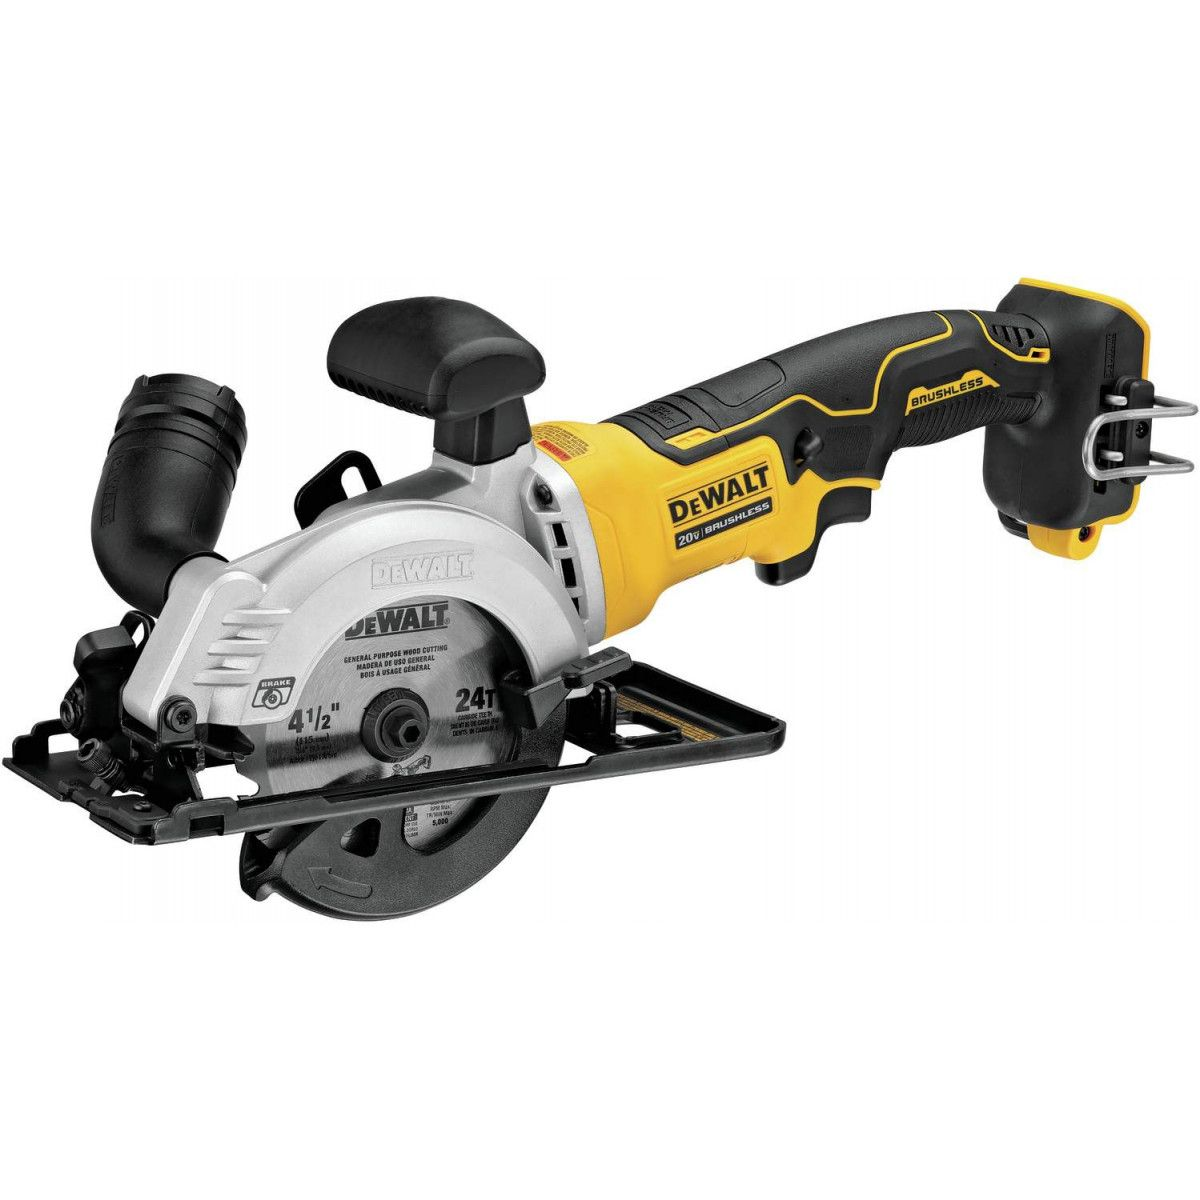 Dewalt Dcs571b Atomic 20v Max 4 1 2 Best Cordless Circular Saw Cordless Circular Saw Dewalt